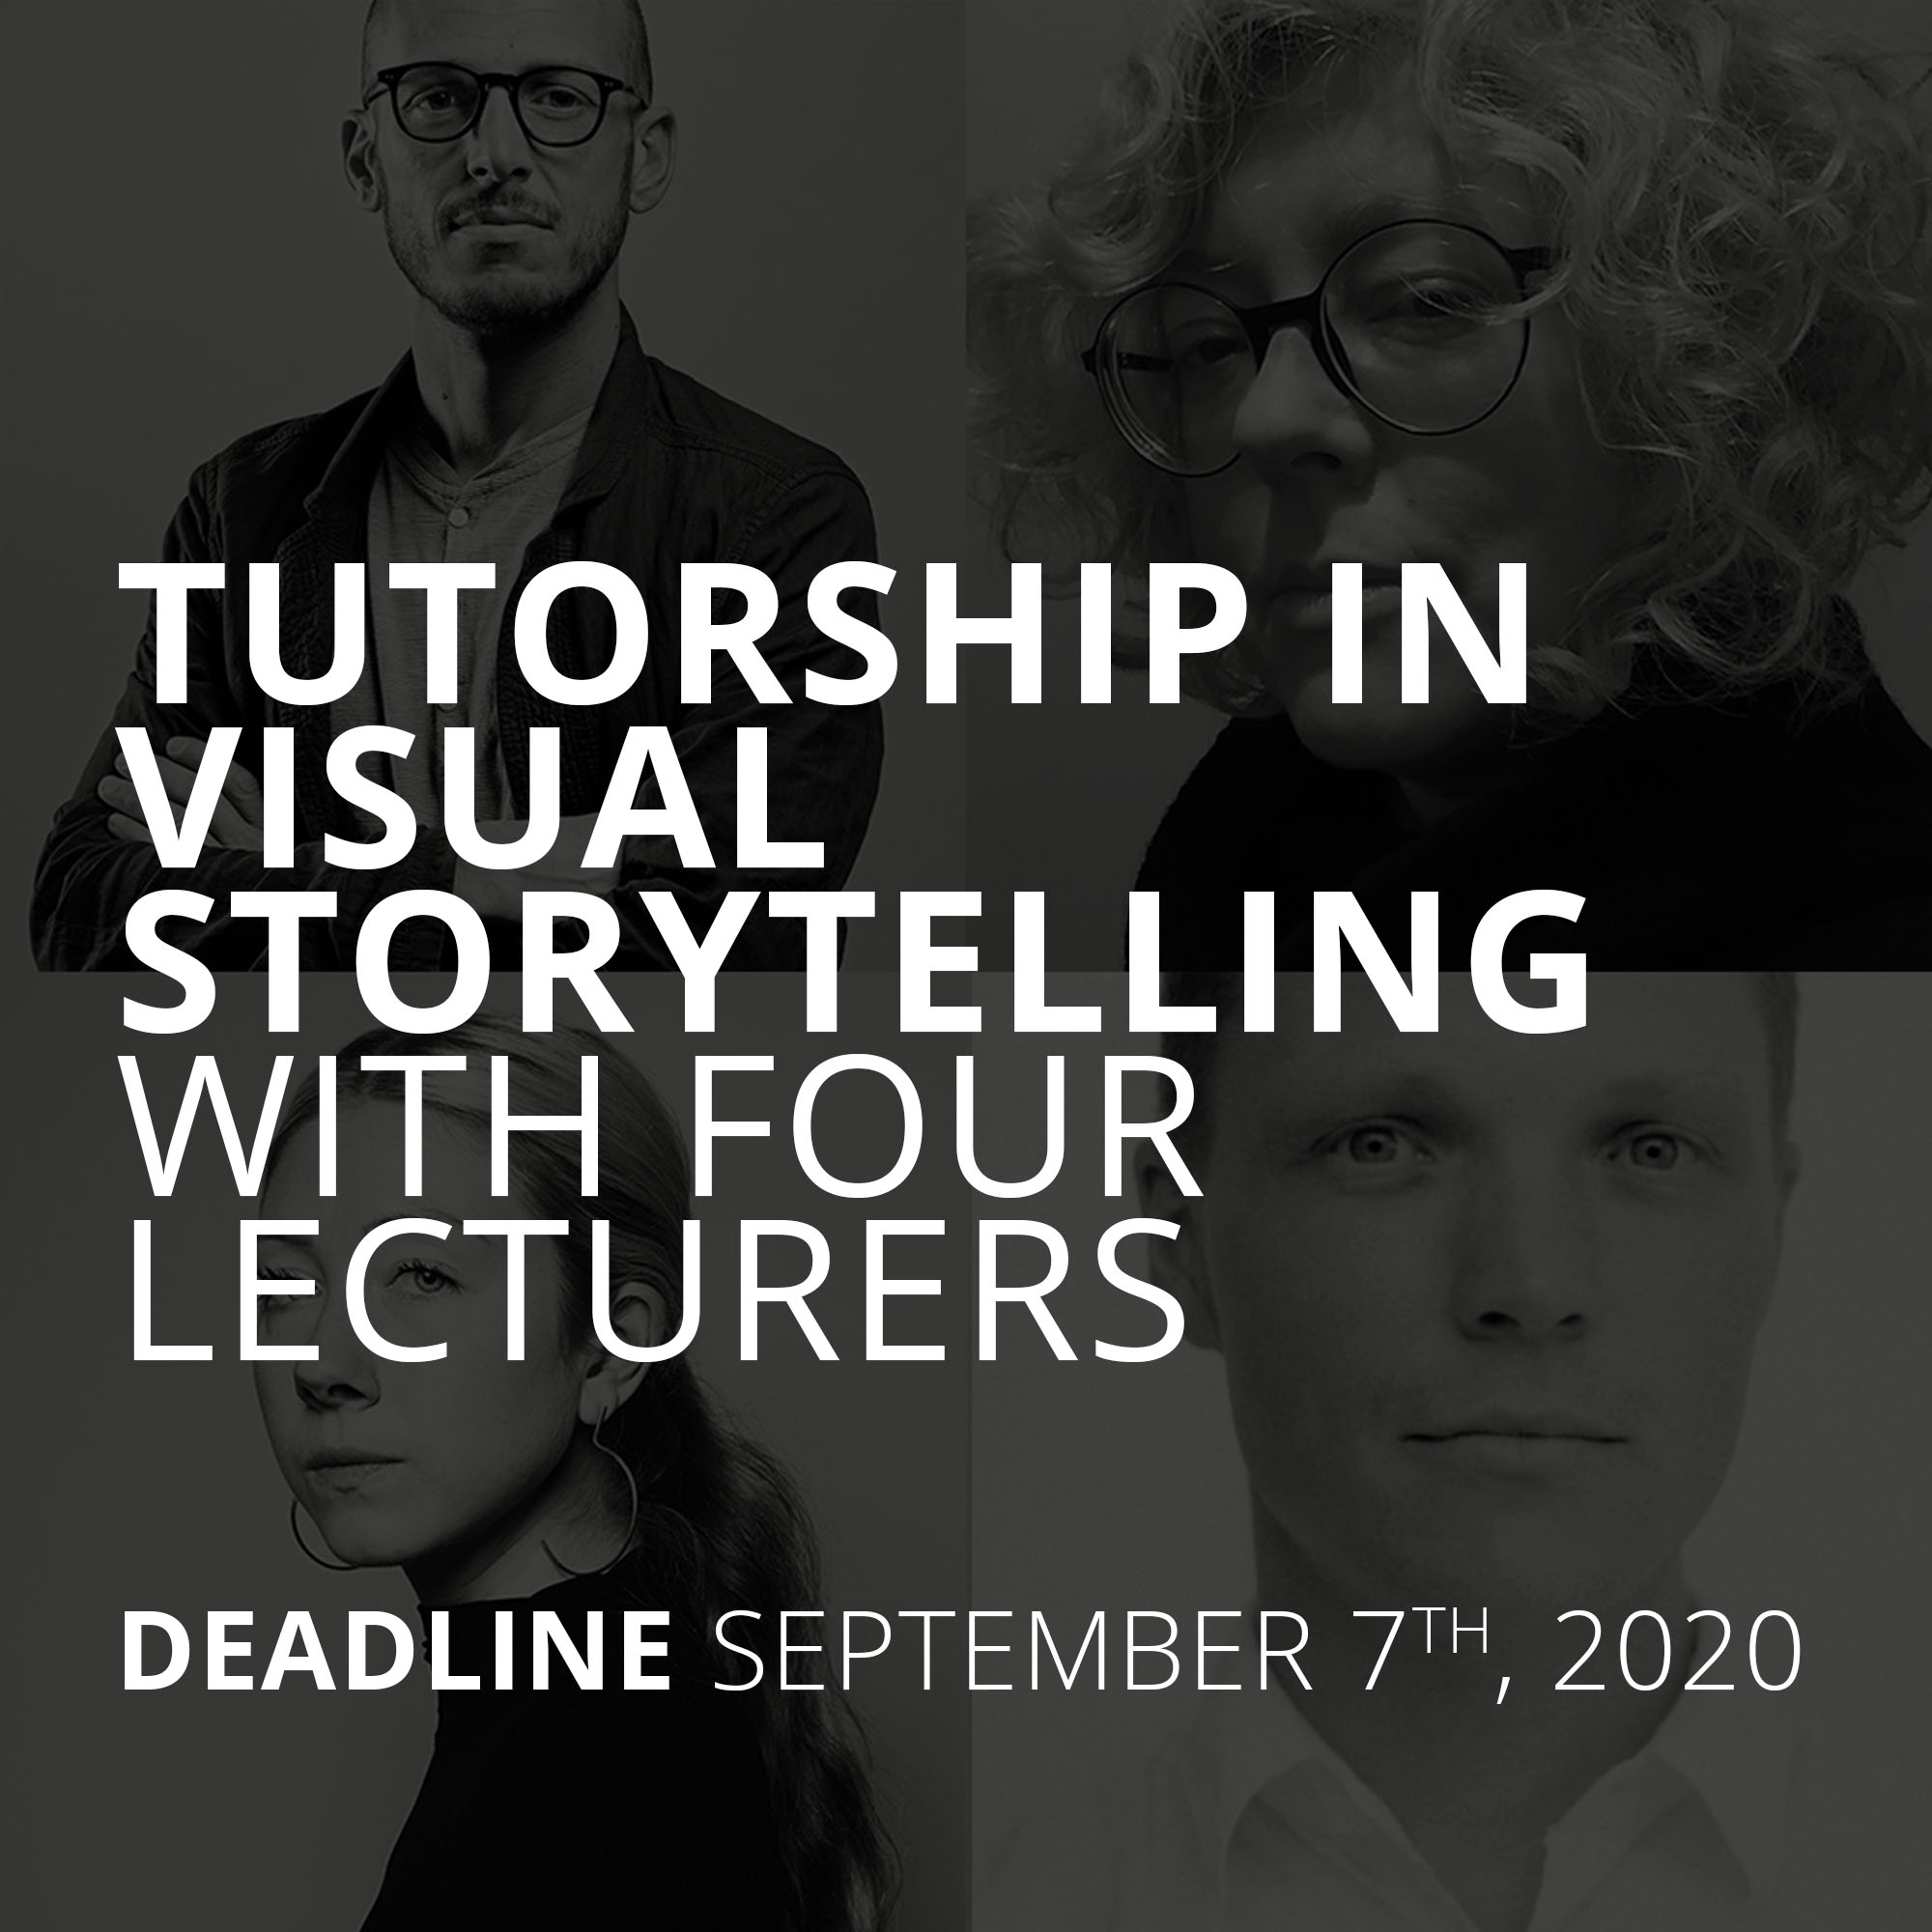 SCHOLARSHIP IN VISUAL STORY TELLING